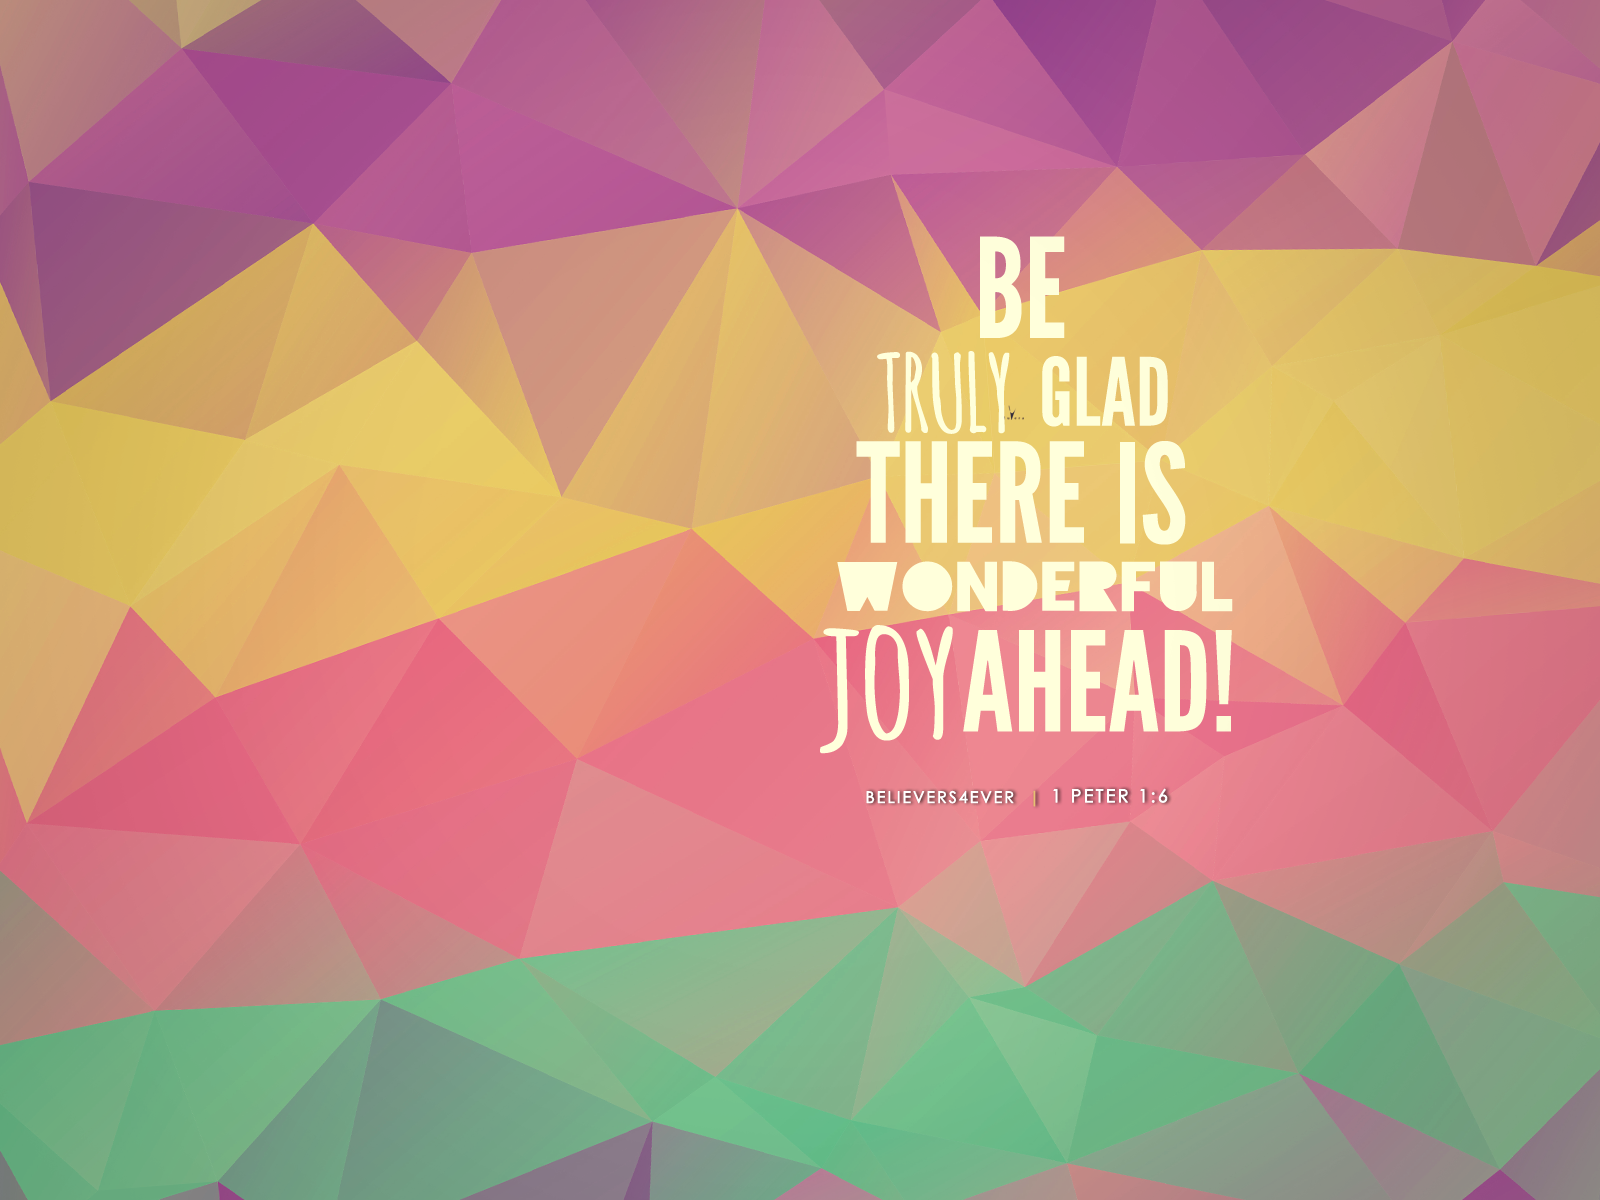 Christian wallpapers 1600x1200